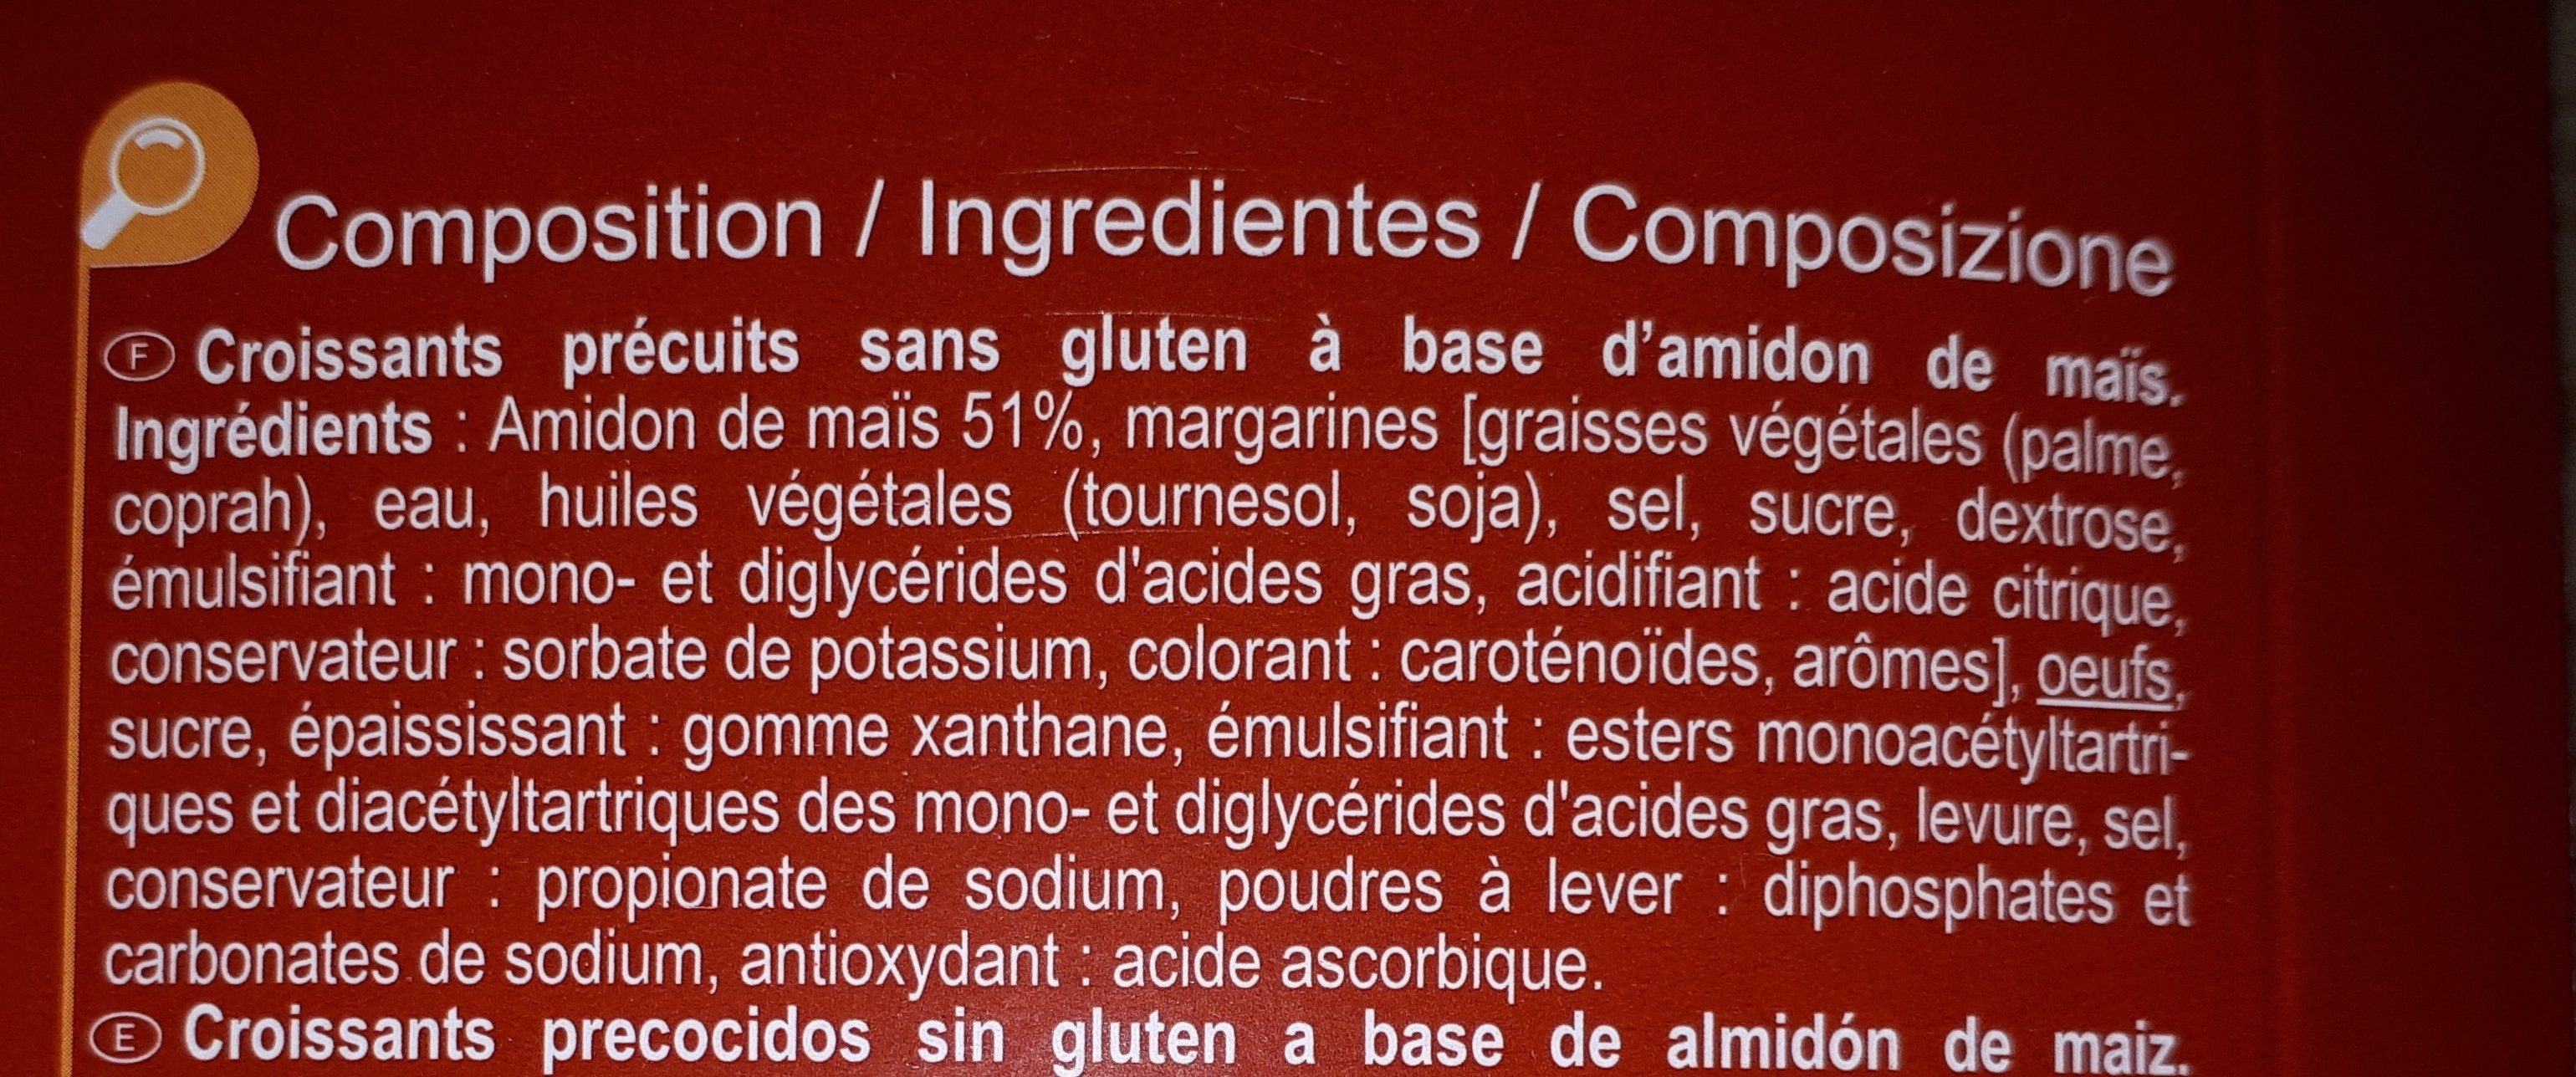 Croissants précuits sans gluten à base d'amidon de maïs - Ingredients